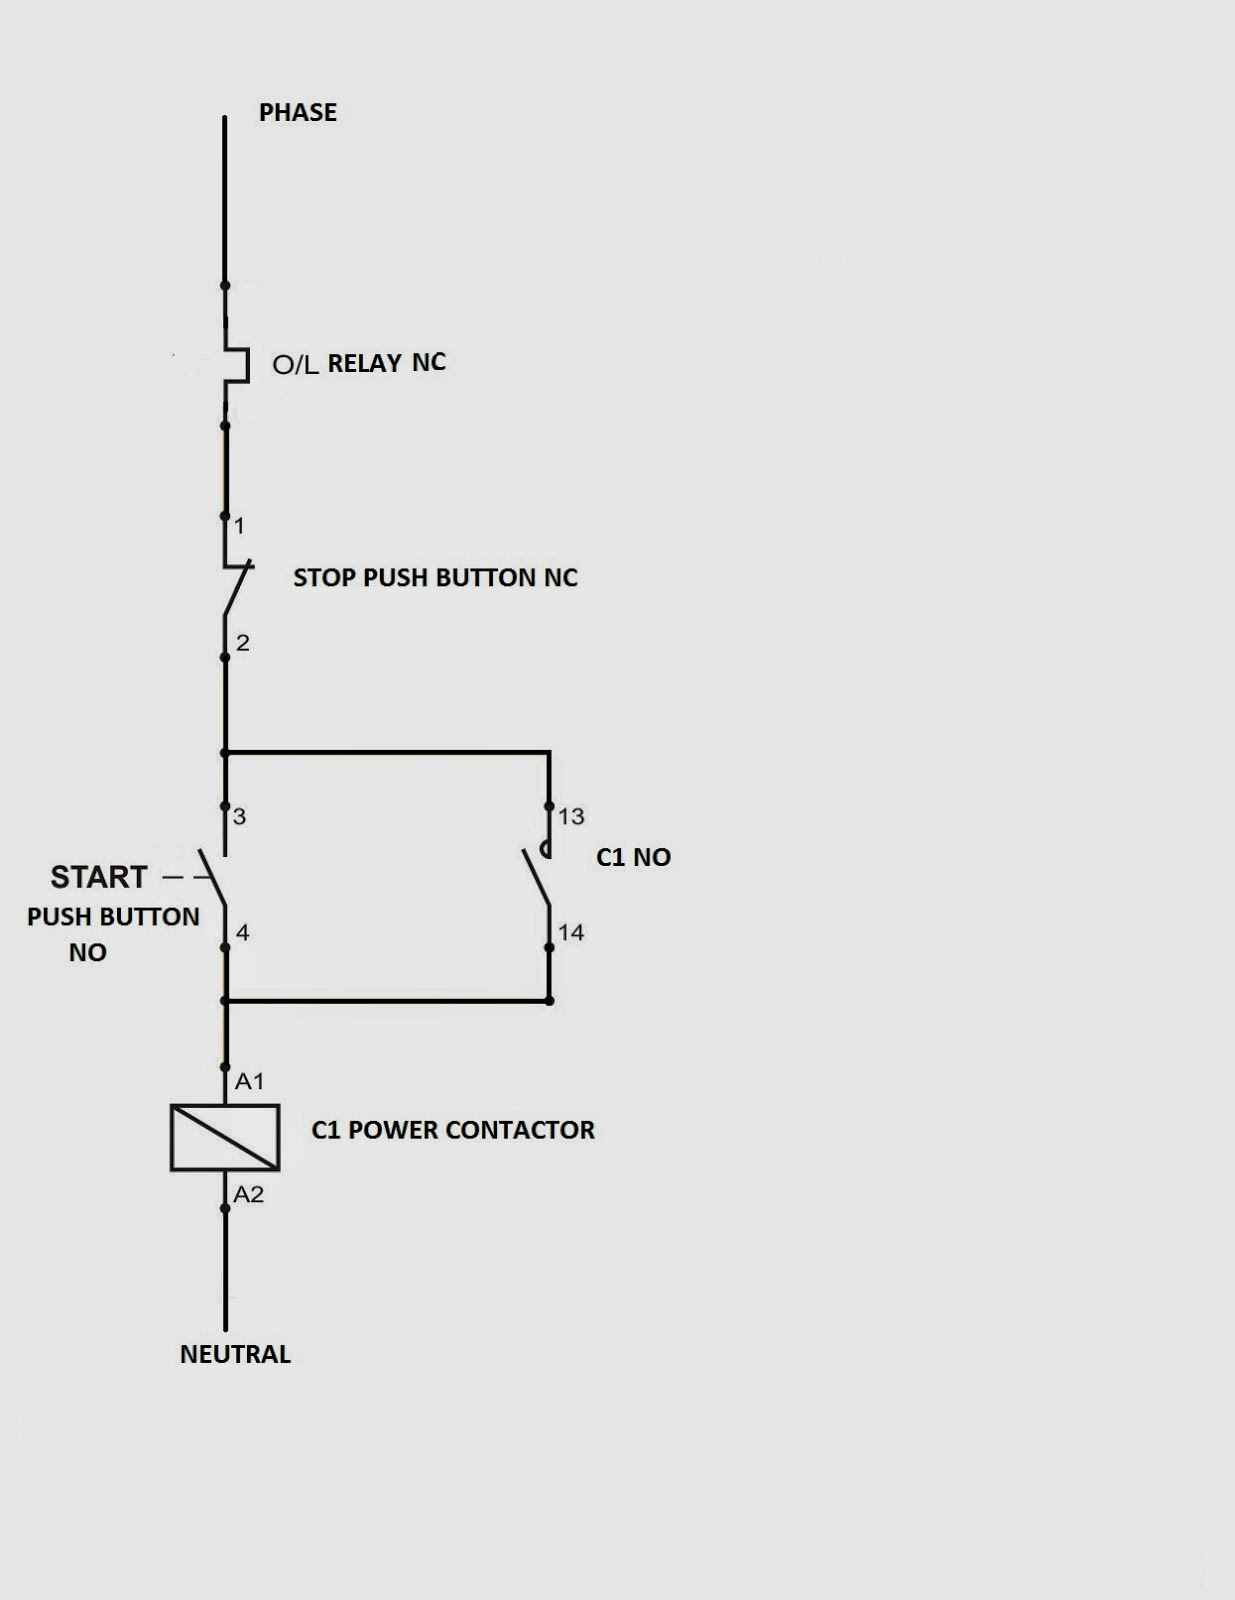 electrical standards direct online dol starter rh electrialstandards blogspot com design circuit diagram online circuit diagram online tool